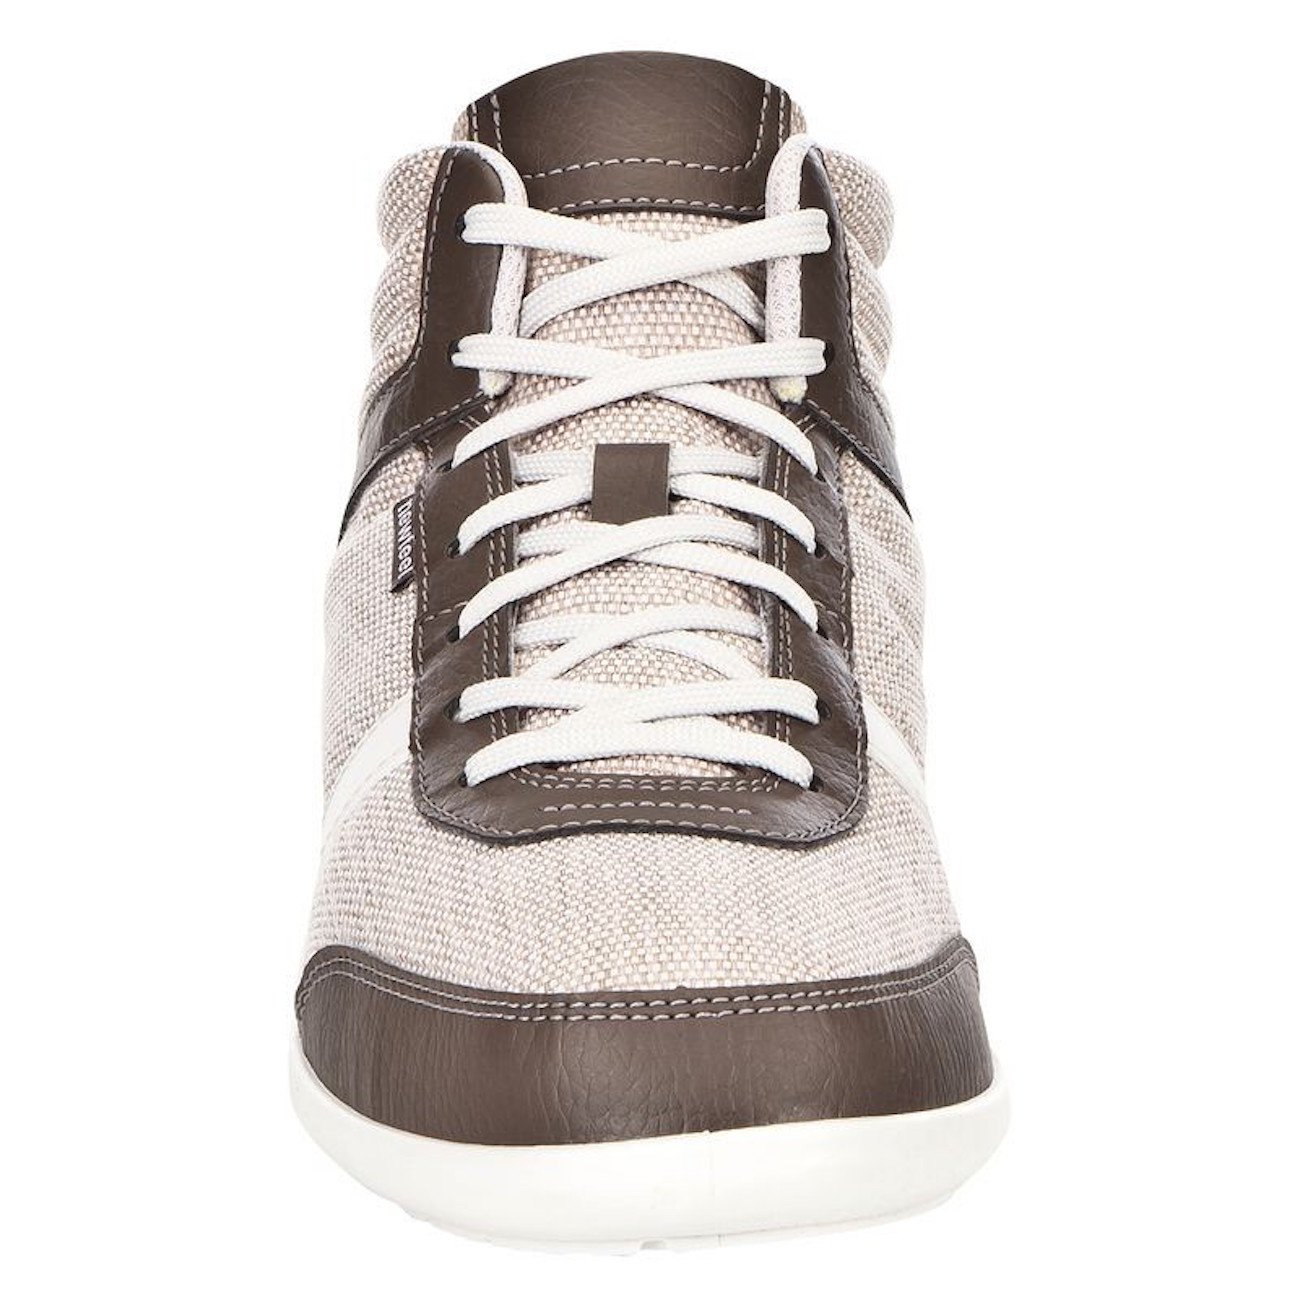 a1f7c3d20c newfeel Many 8298075 Hi Top Sneakers High Top Chaussures de Sport, Chaussures  de Sport EU 40 UK 6.5, Beige, Marron, Blanc, Brown + White - Beige -  Beige,: ...